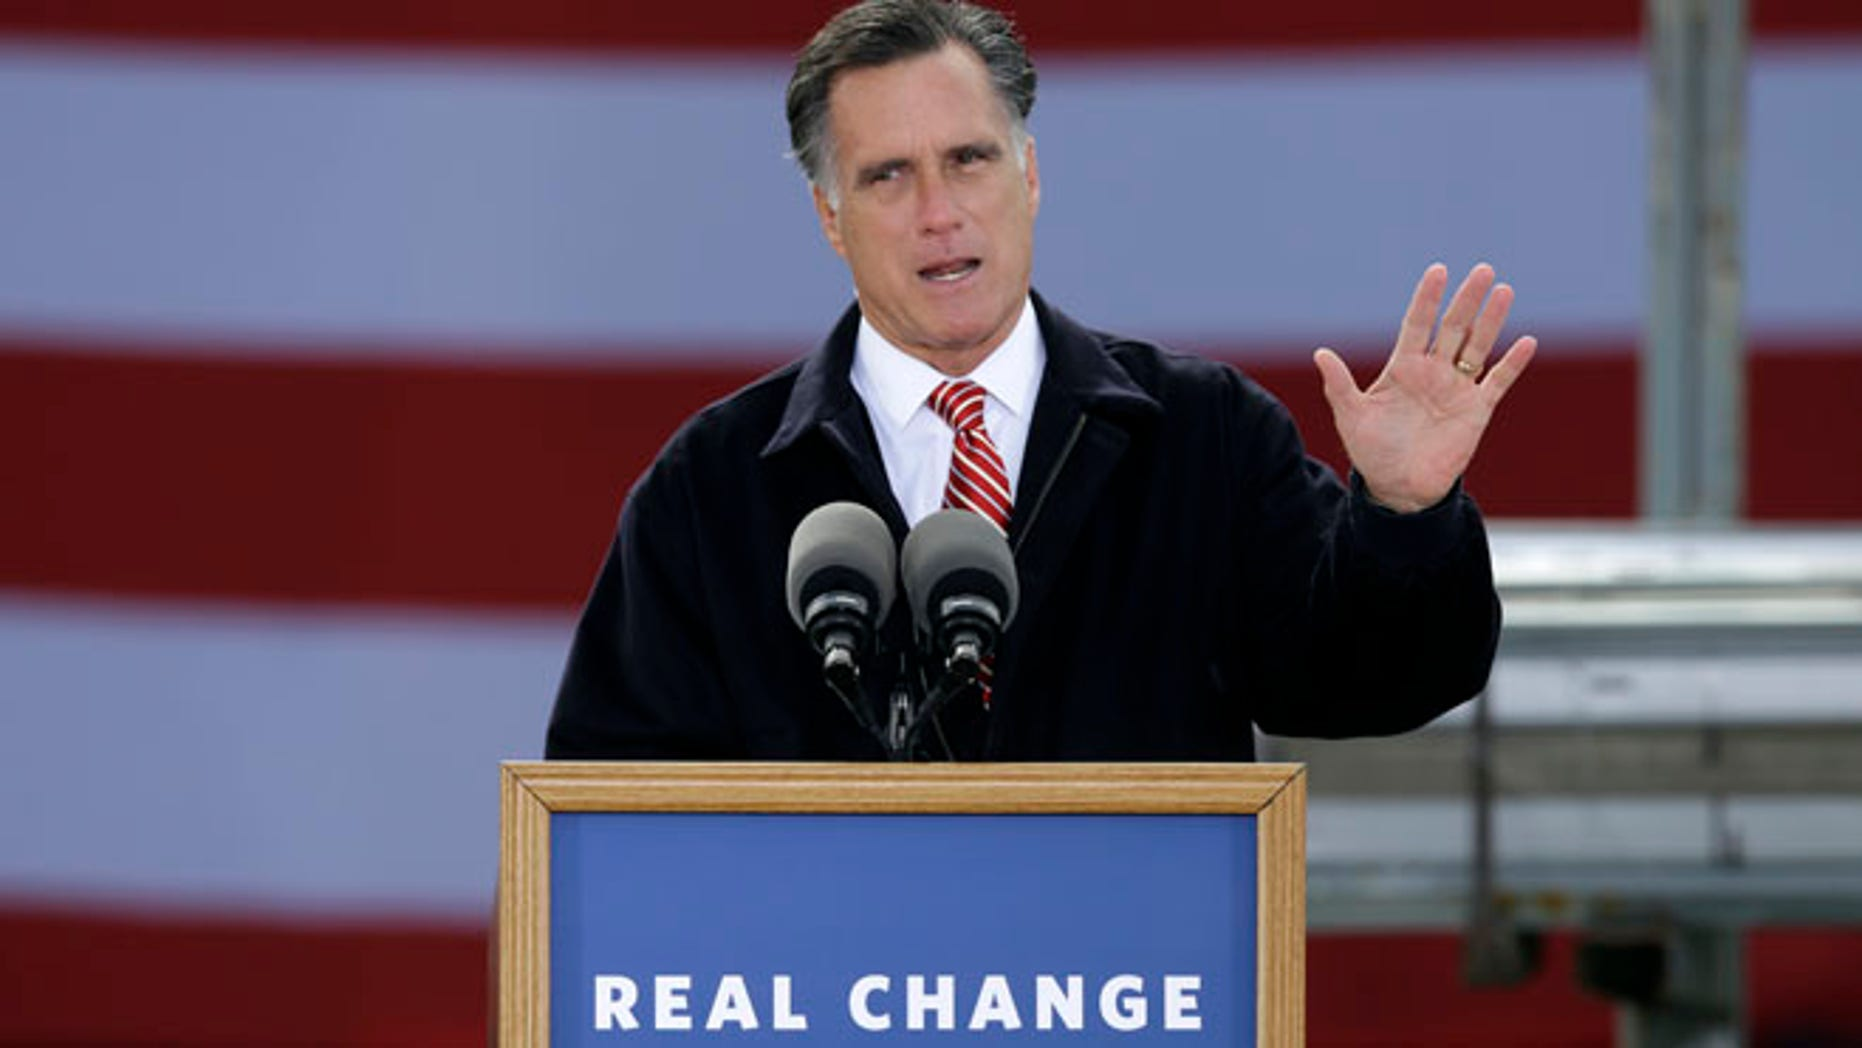 Oct. 26, 2012: Mitt Romney speaks about the economy during a campaign stop in Ames, Iowa.